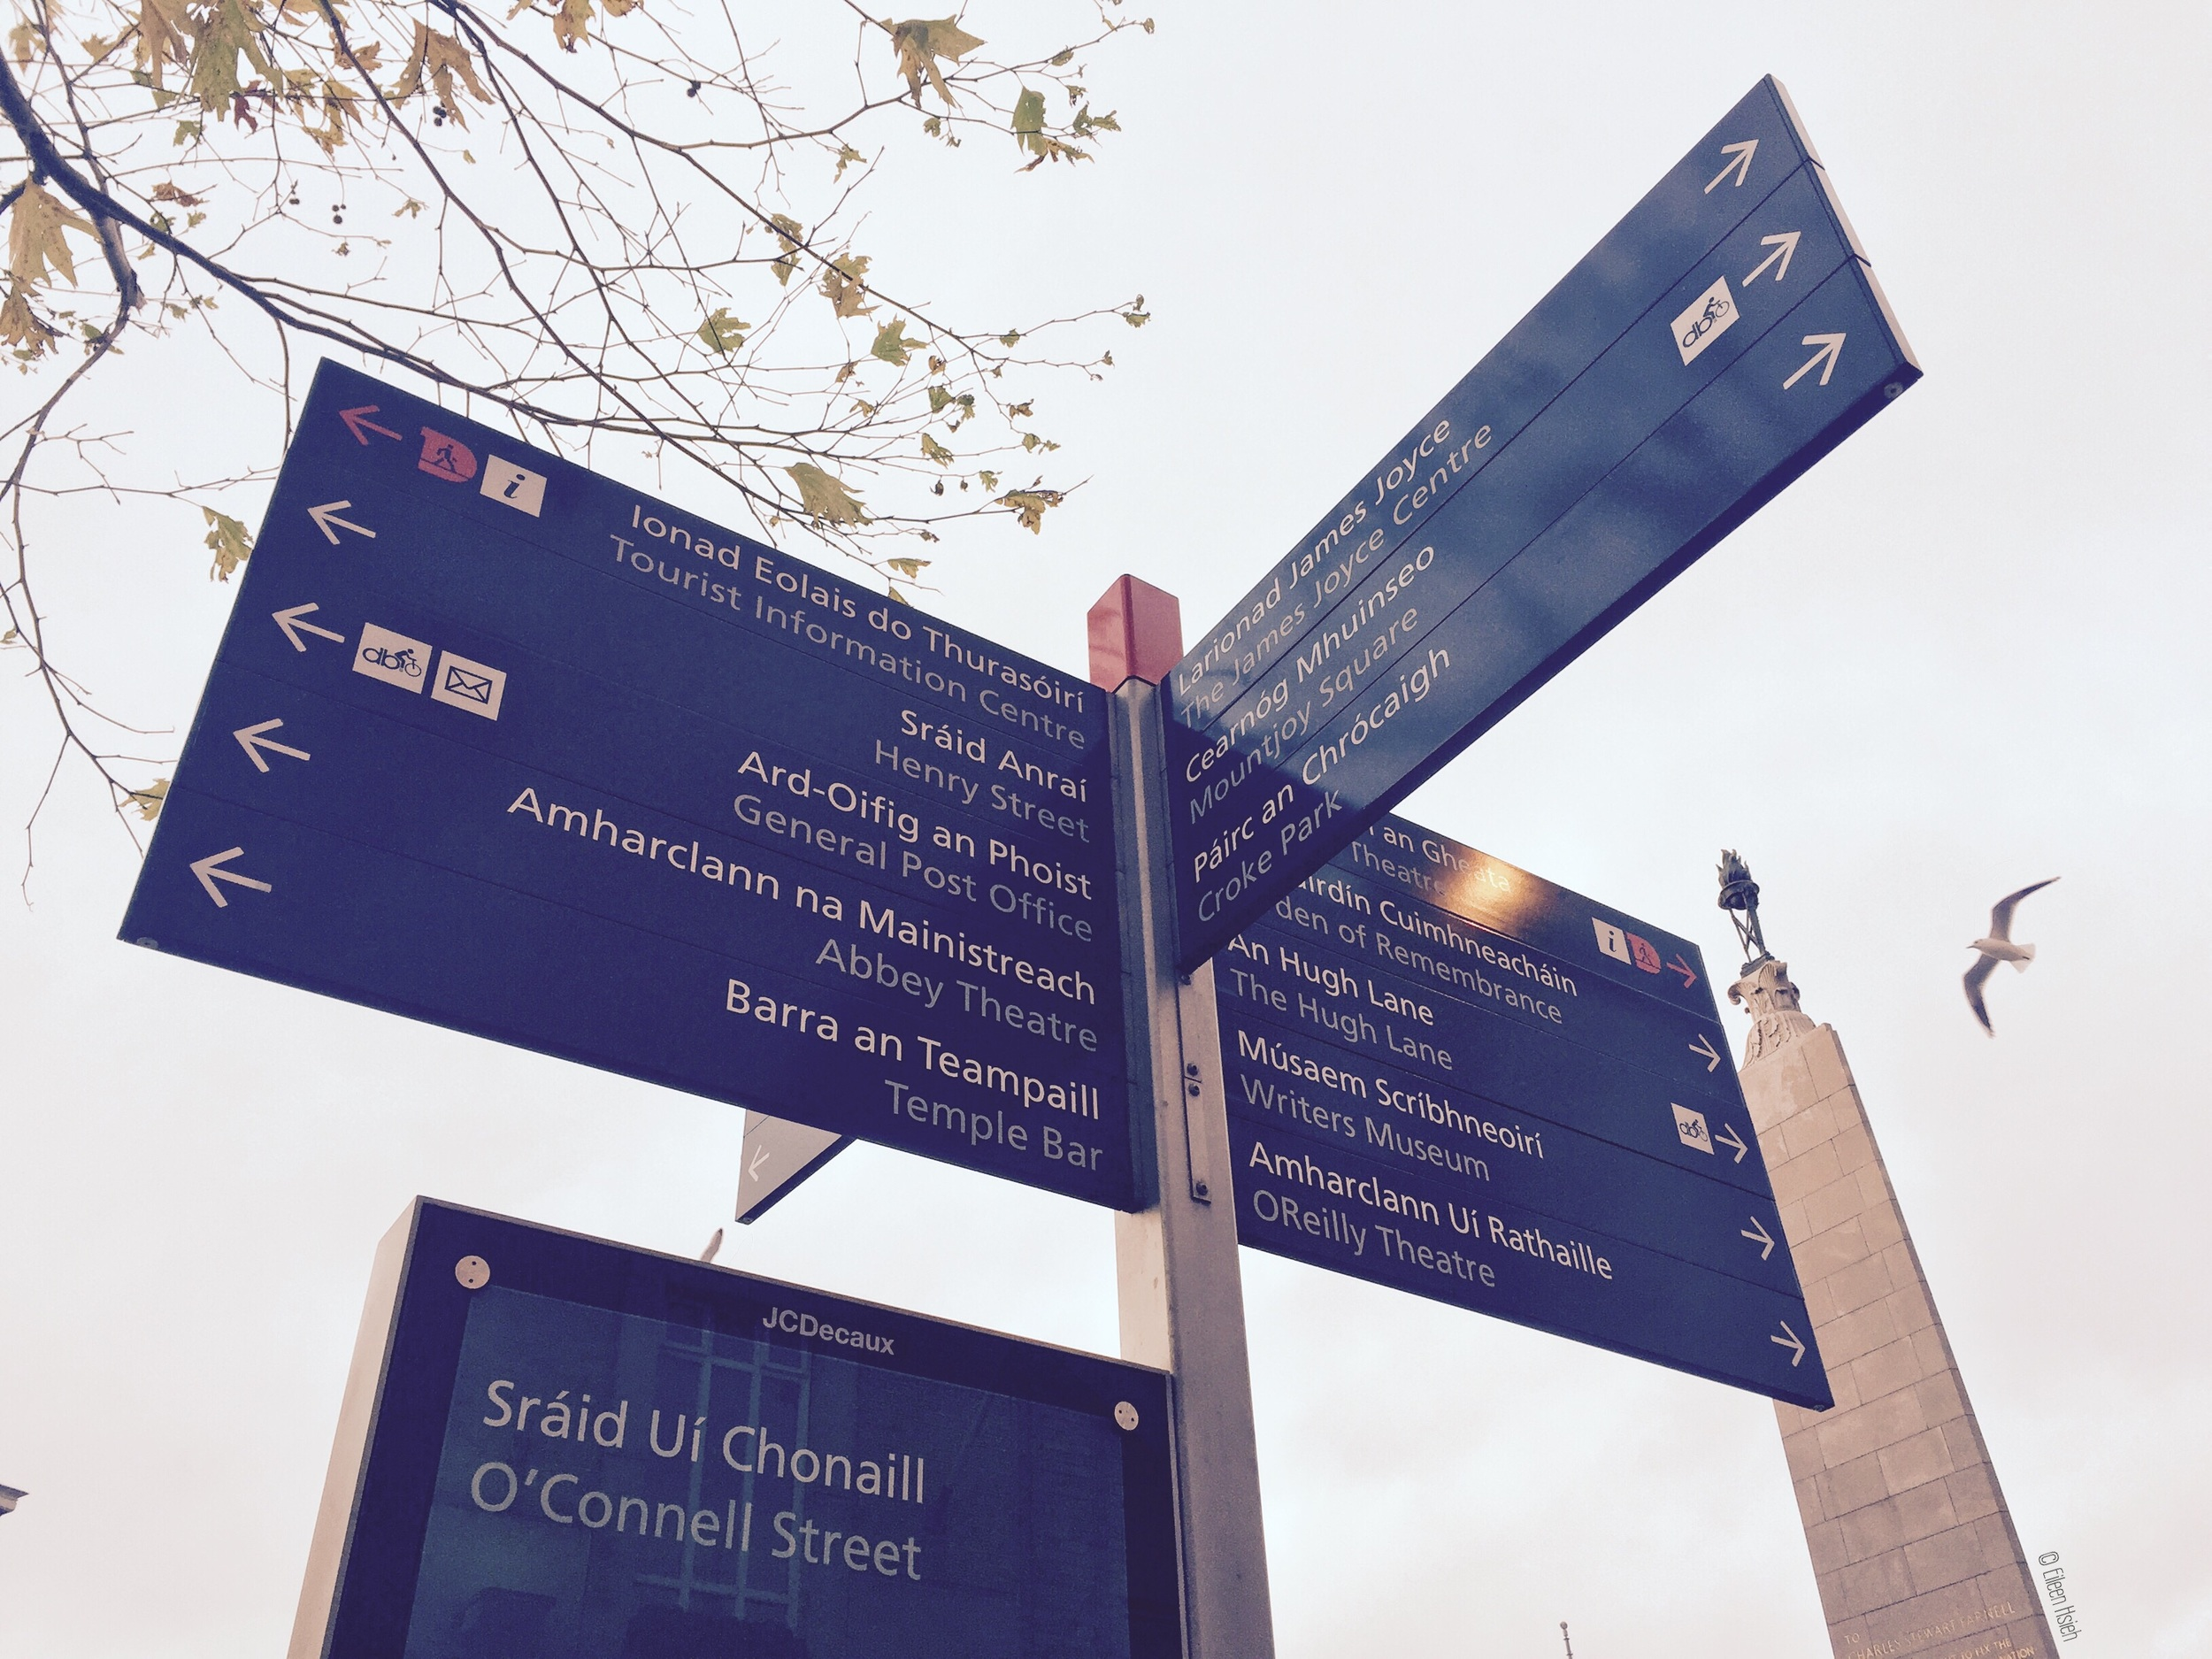 Irish Gaelic and English are the two official languages of Ireland and can be found on most signs.